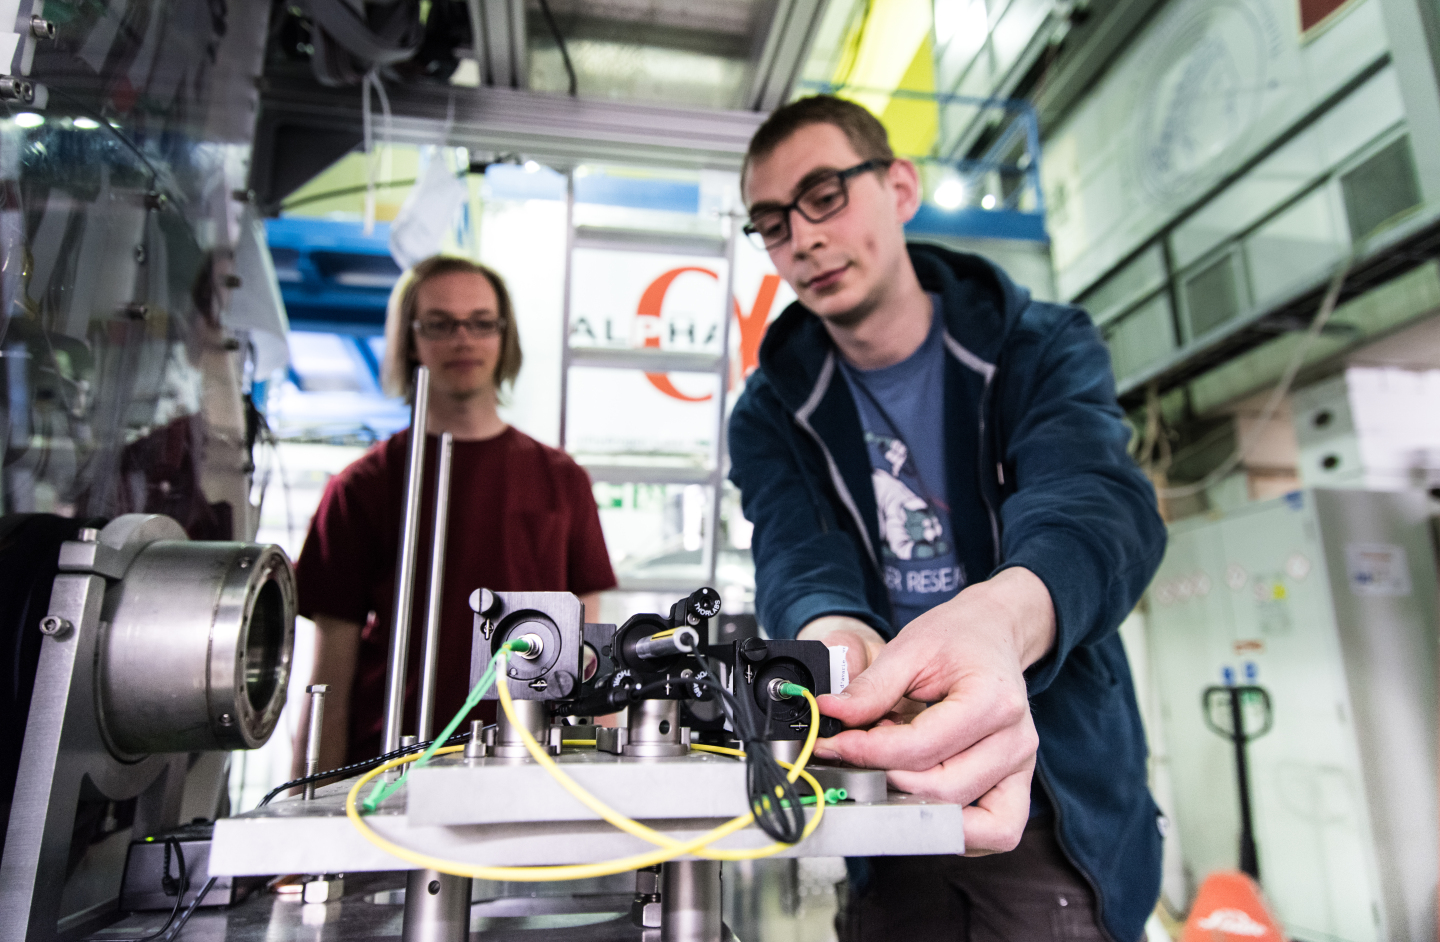 Chris Ørum and Steven Armstrong Jones from ALPHA experiment working on LASER